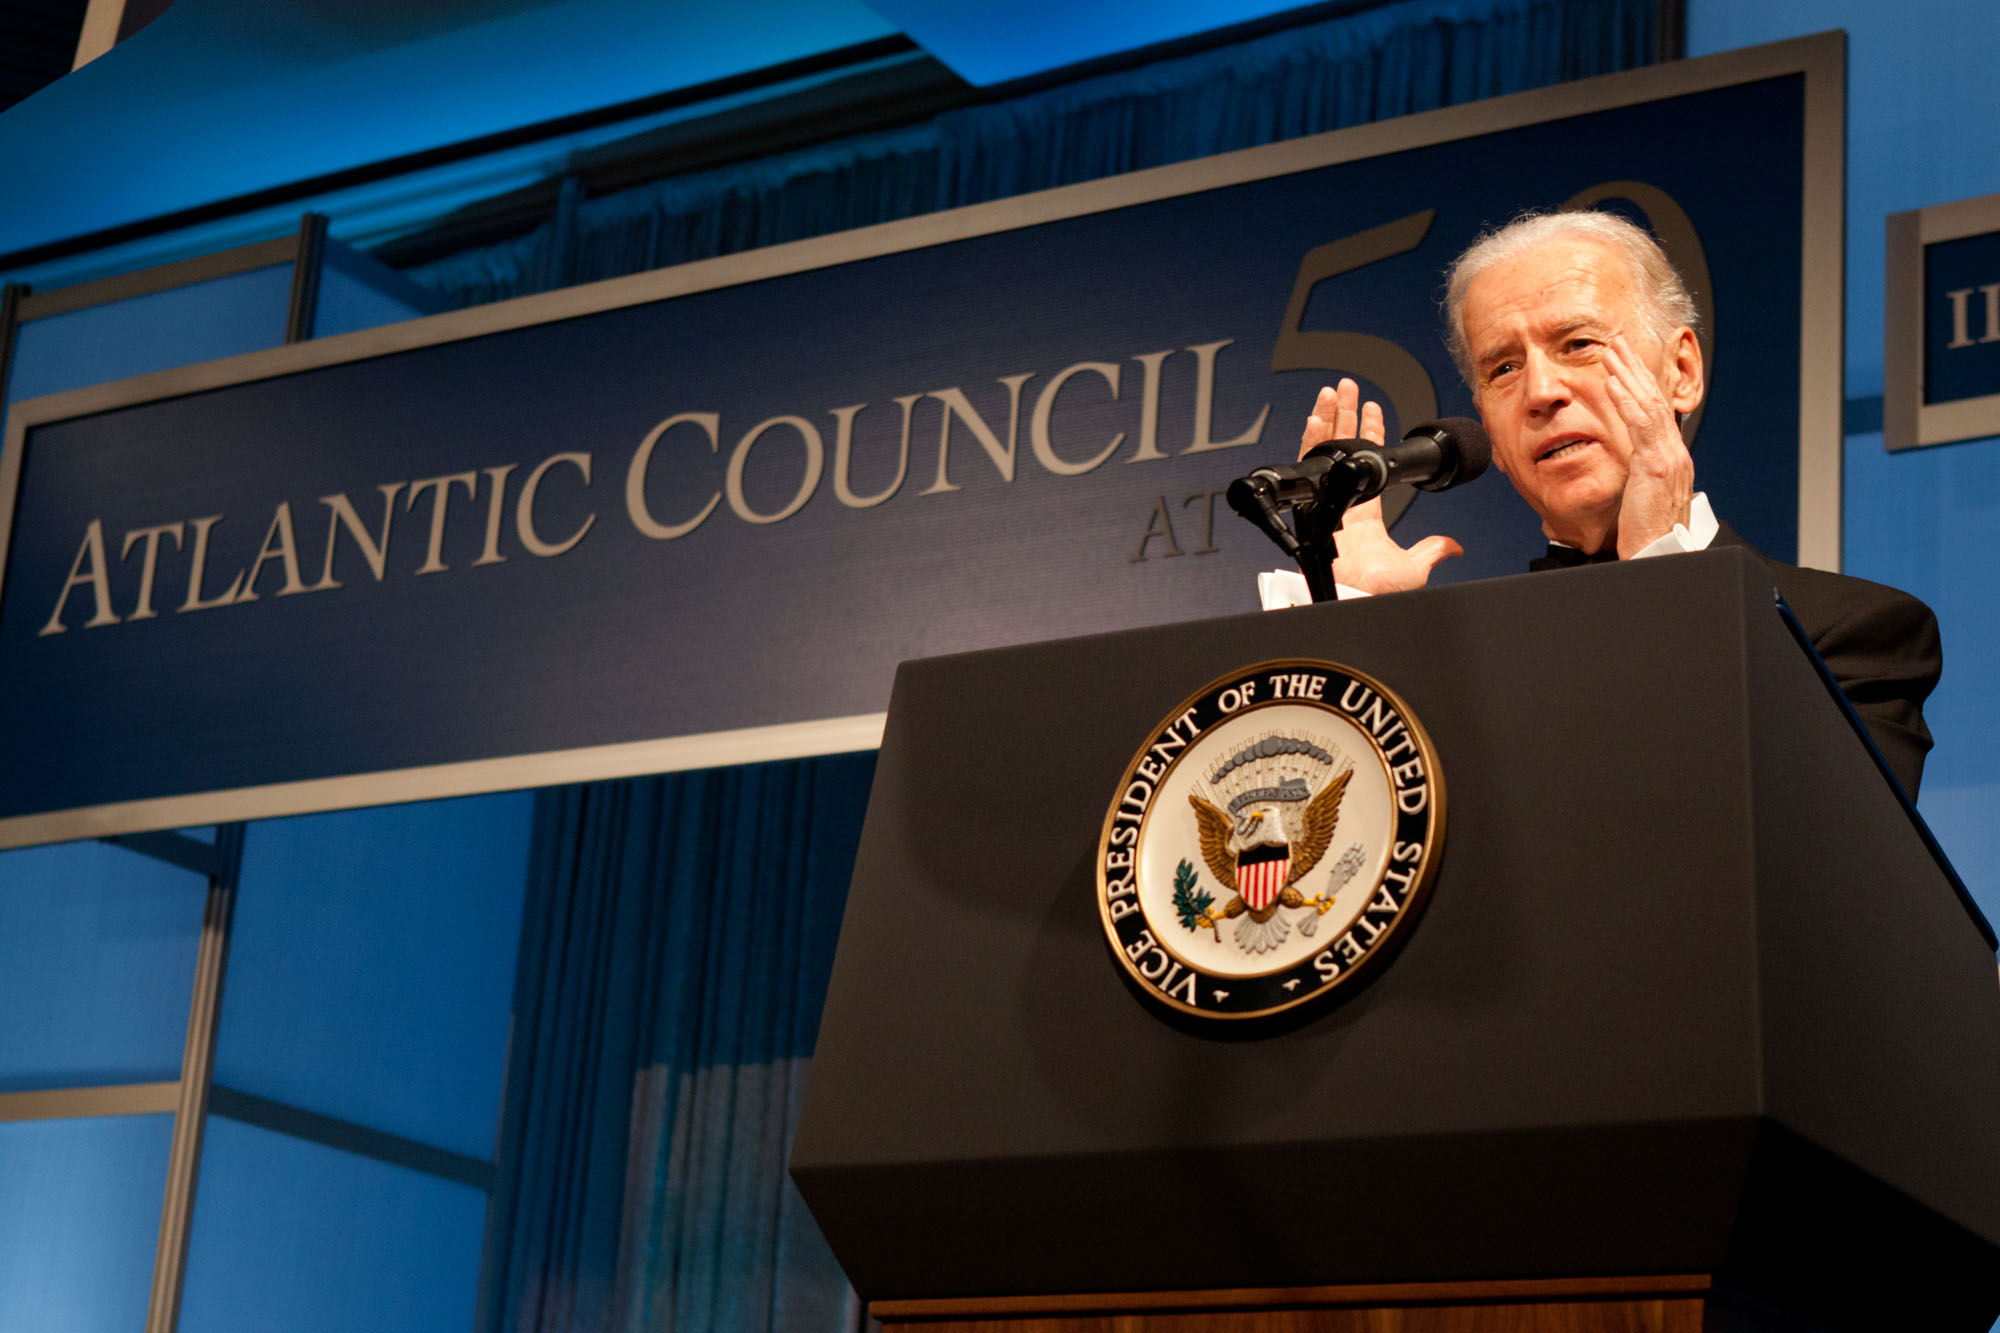 Vice President Biden Speaks at the 50th Anniversary Celebration of the Atlantic Council